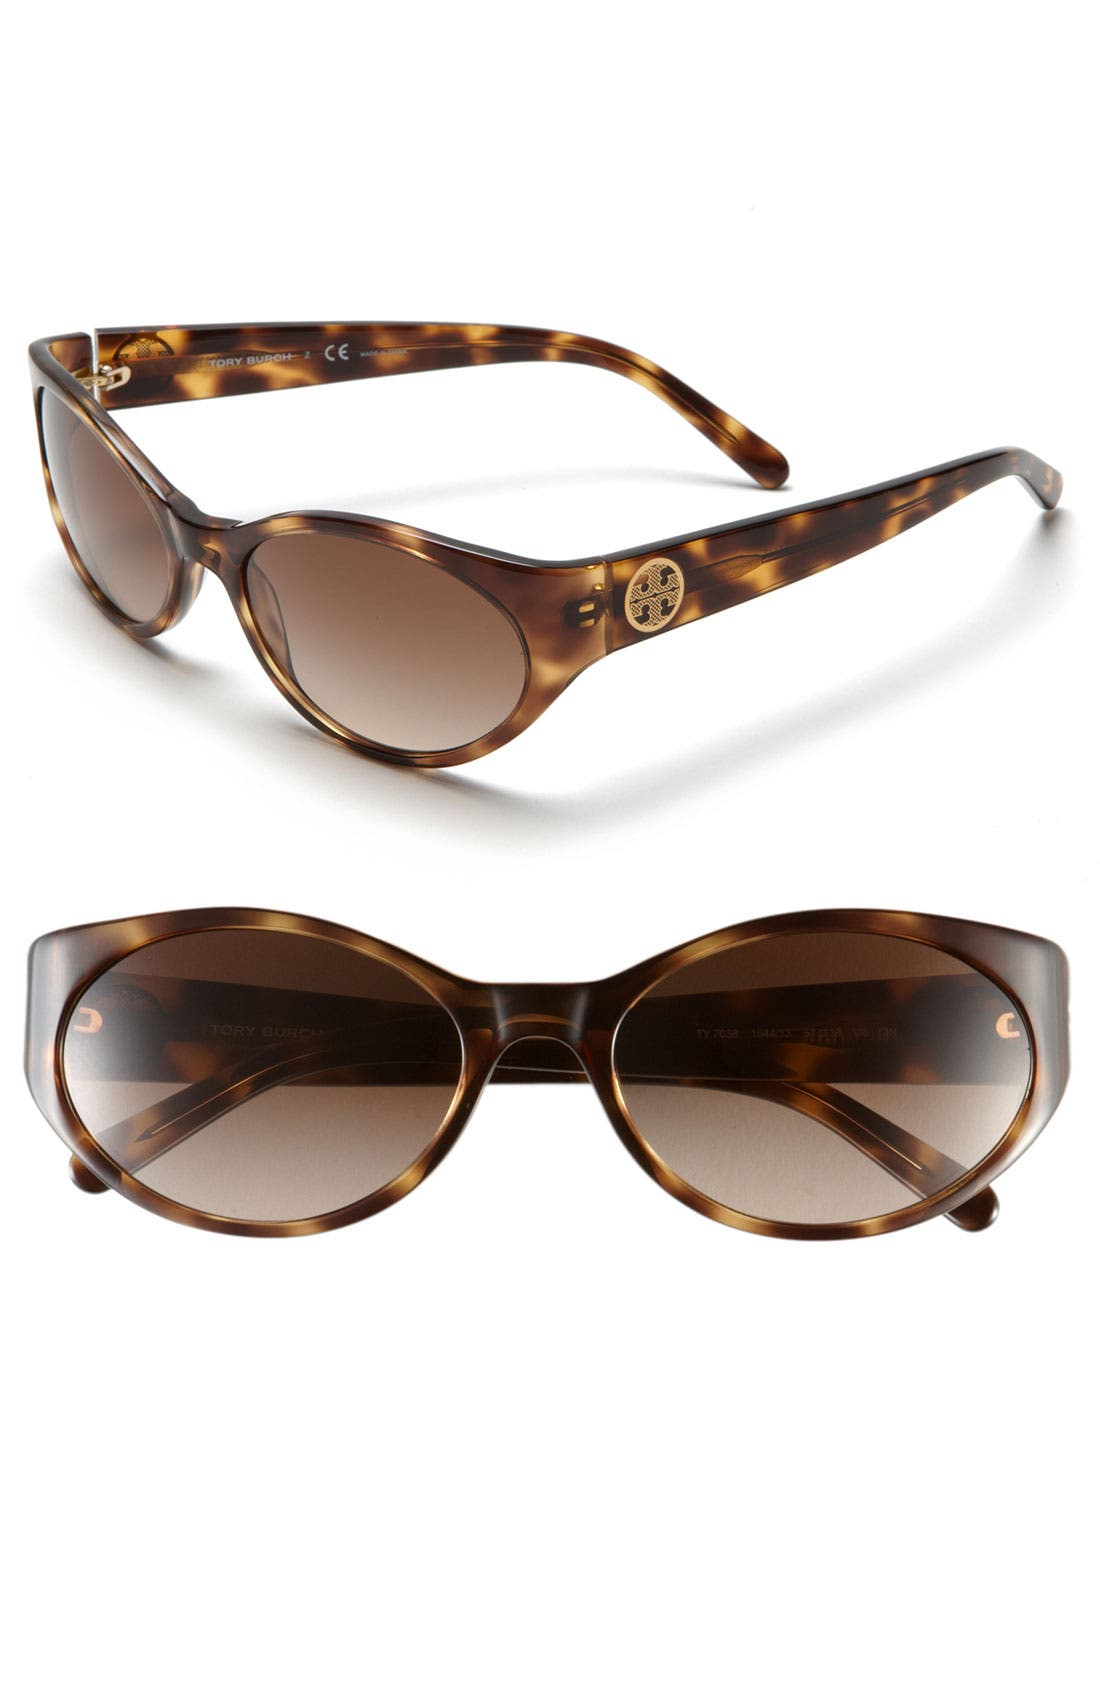 Alternate Image 1 Selected - Tory Burch 57mm Cat Eye Sunglasses